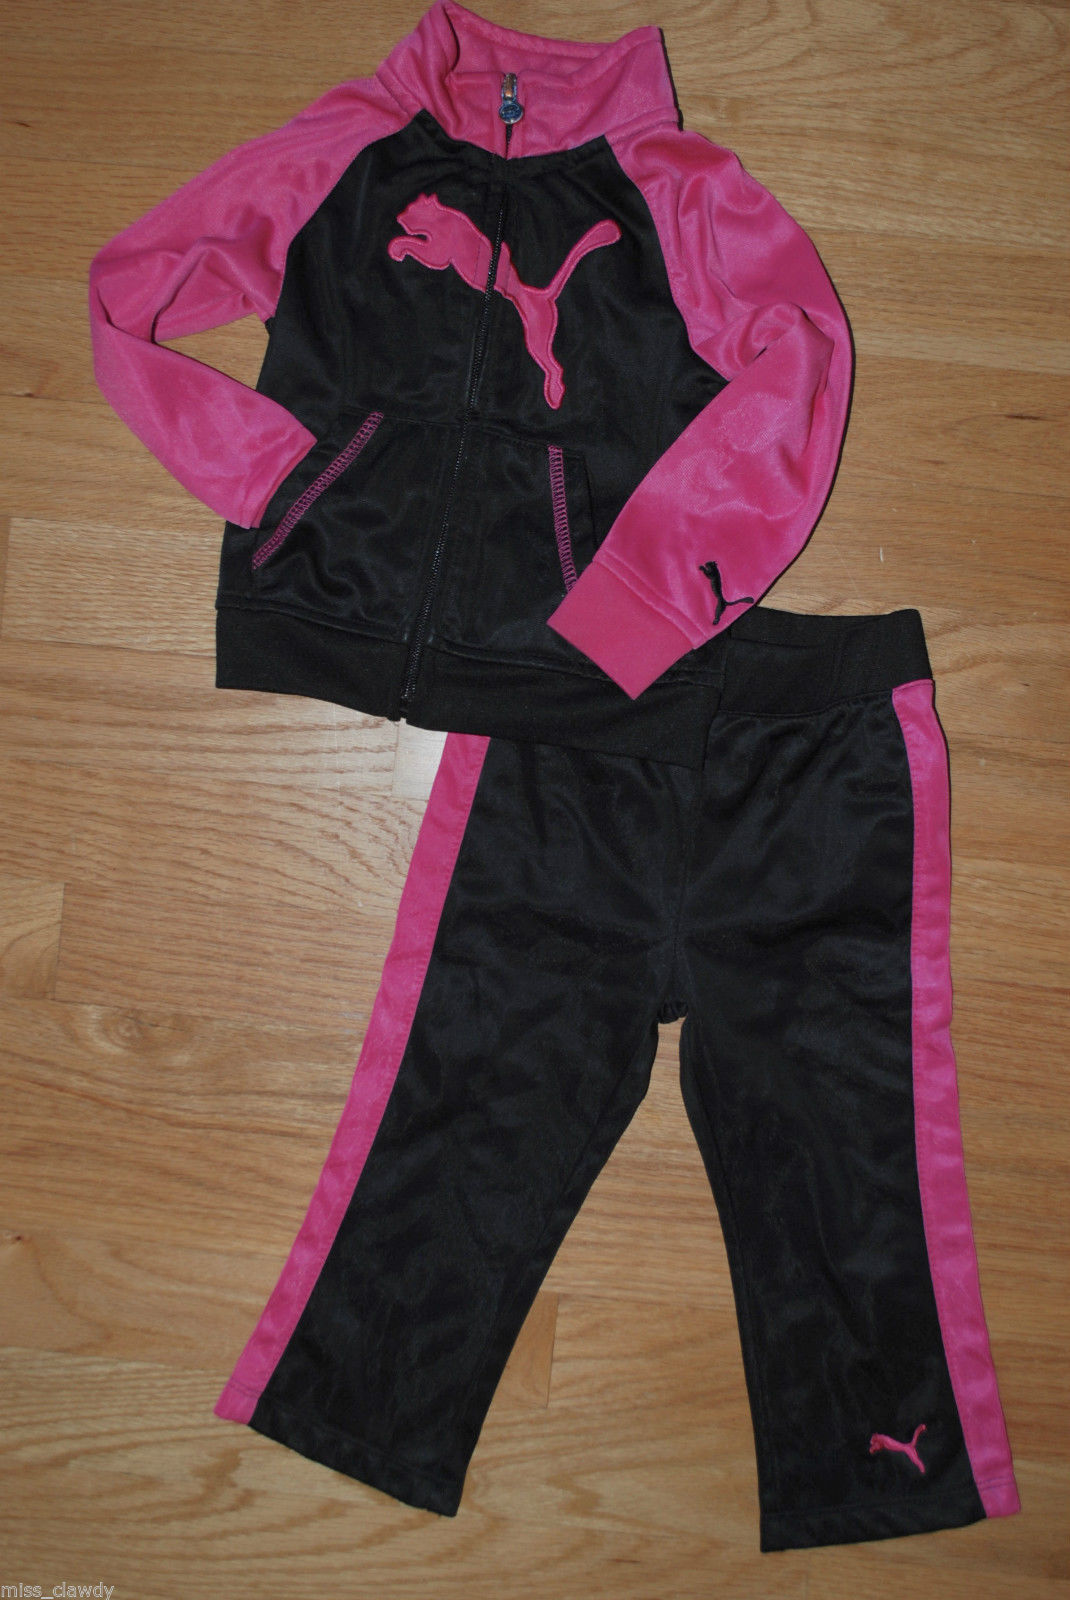 buy online a8cd3 2e066 Puma Sweat Track Suit Outfit Set - Toddler and 29 similar items